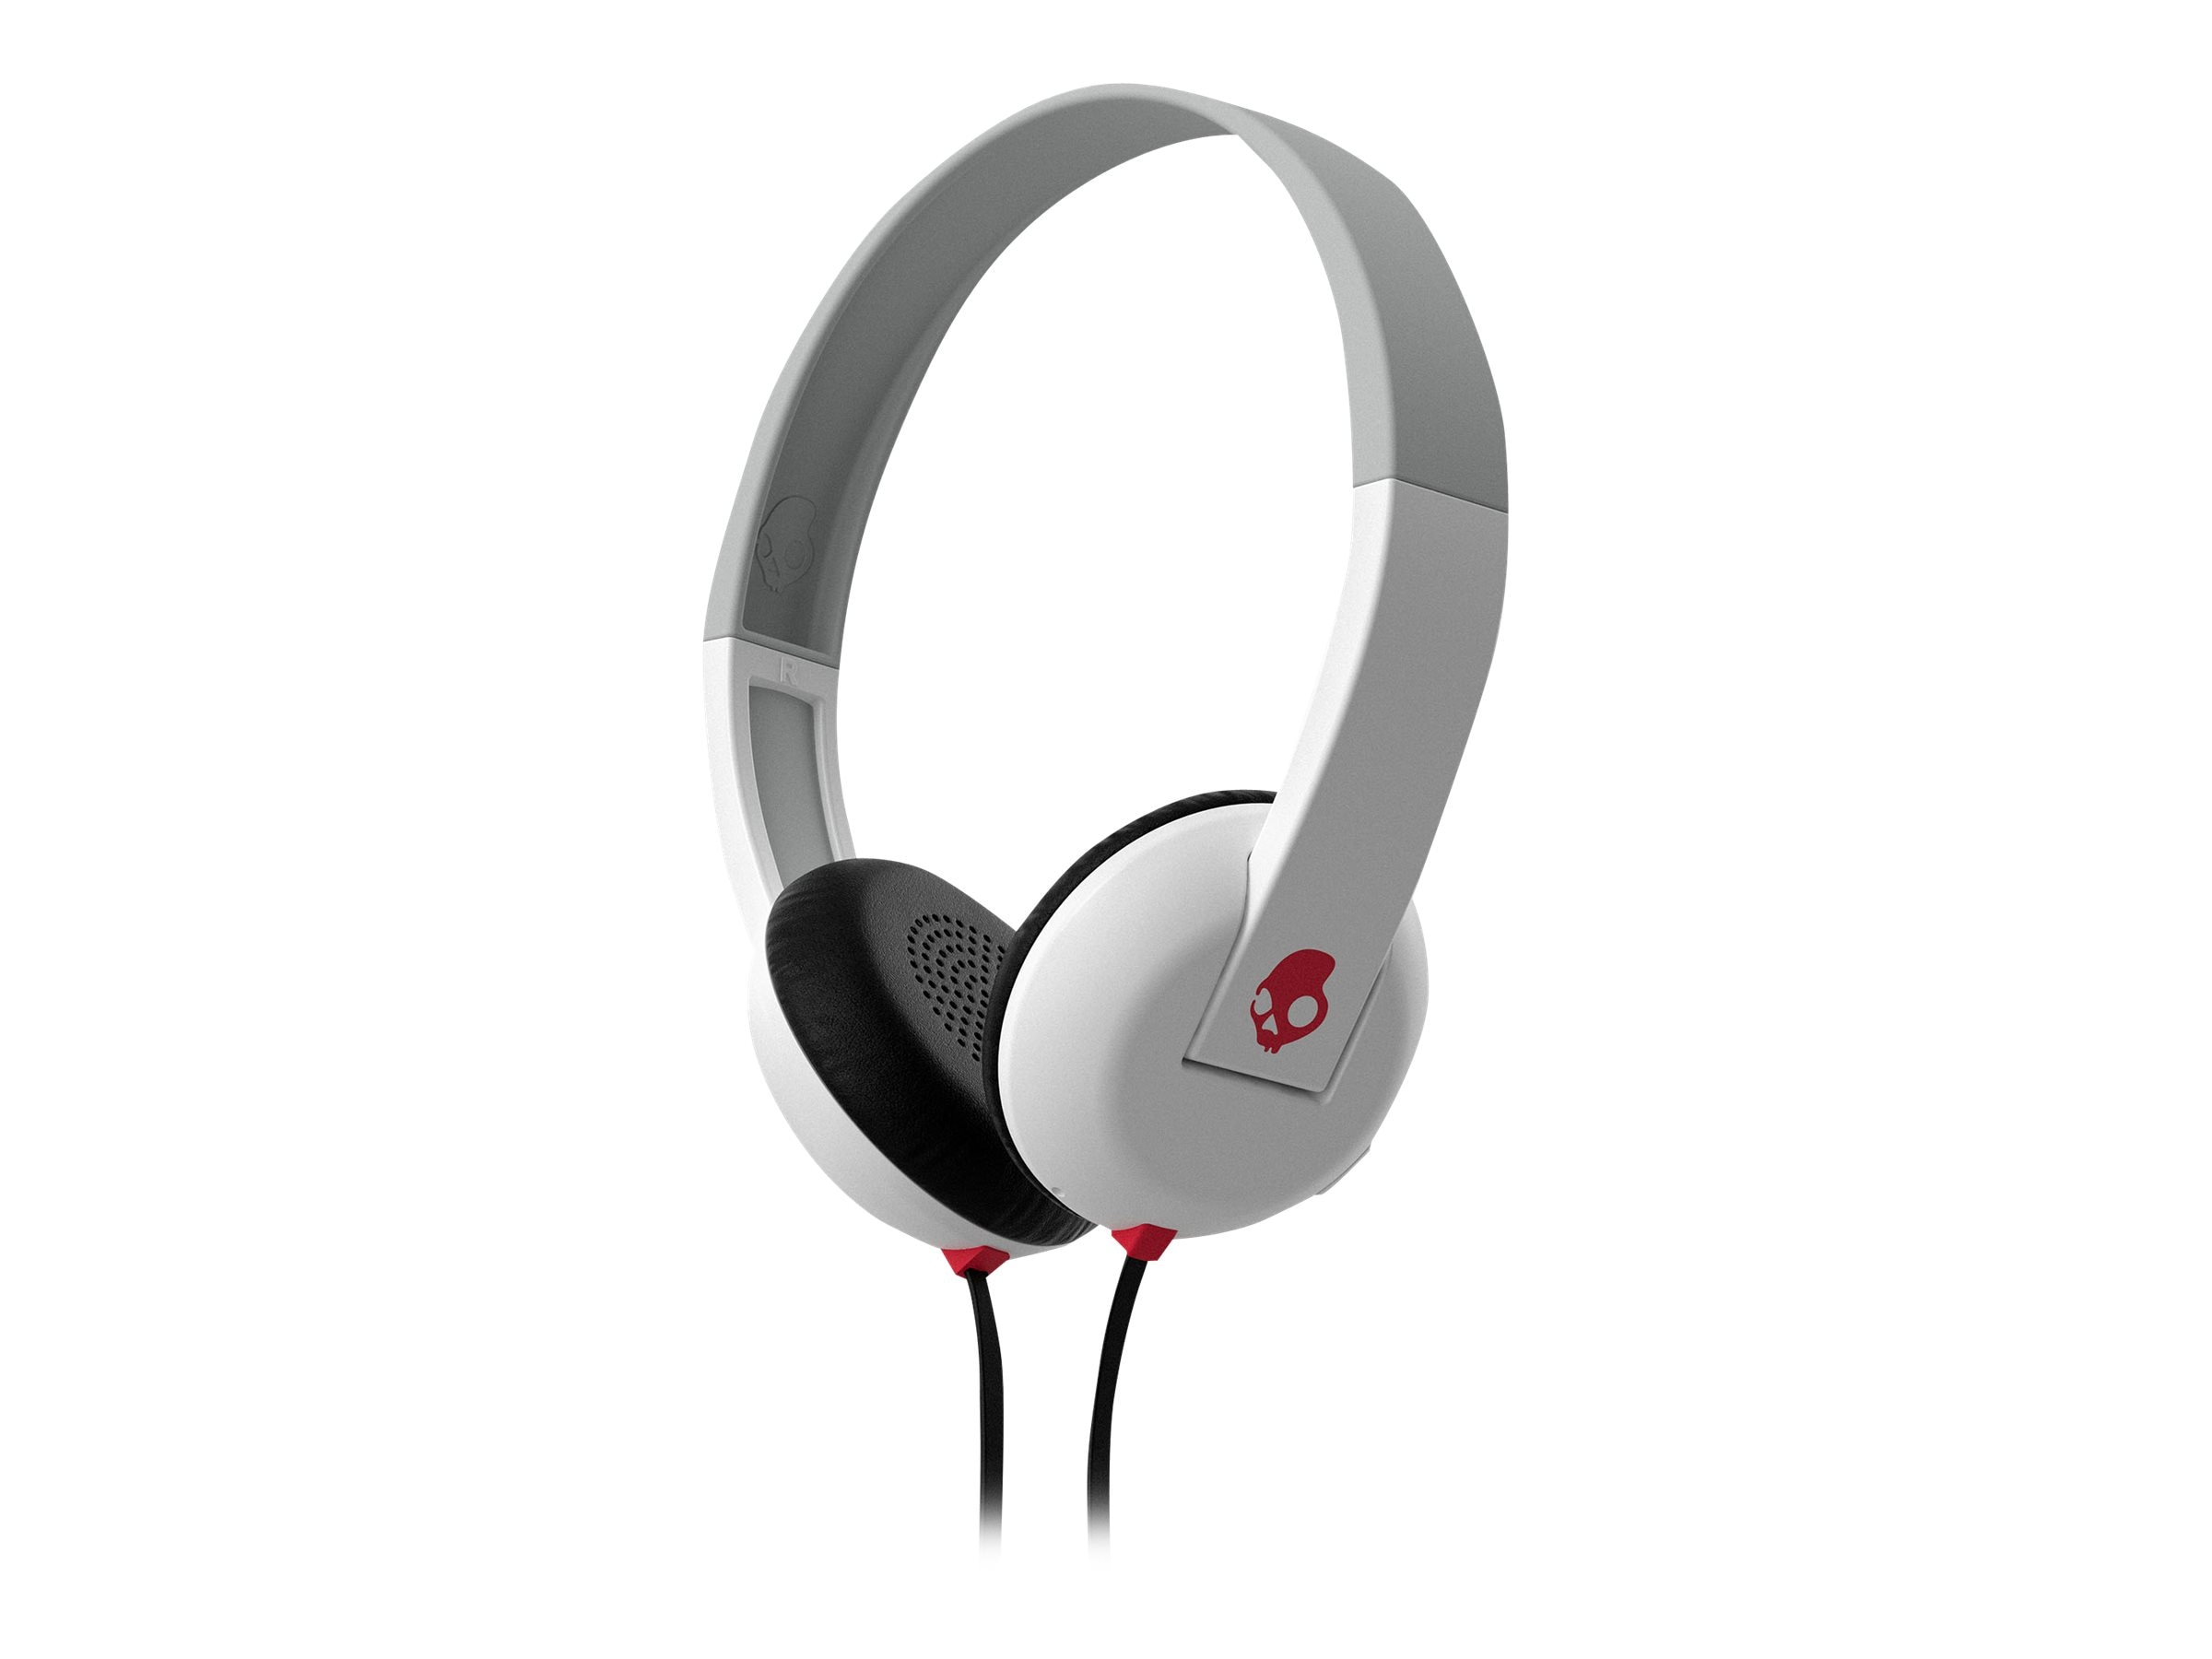 Skullcandy Uproar Headphones w  Tap Tech - White Gray Red, S5URHT-457, 23836821, Headsets (w/ microphone)